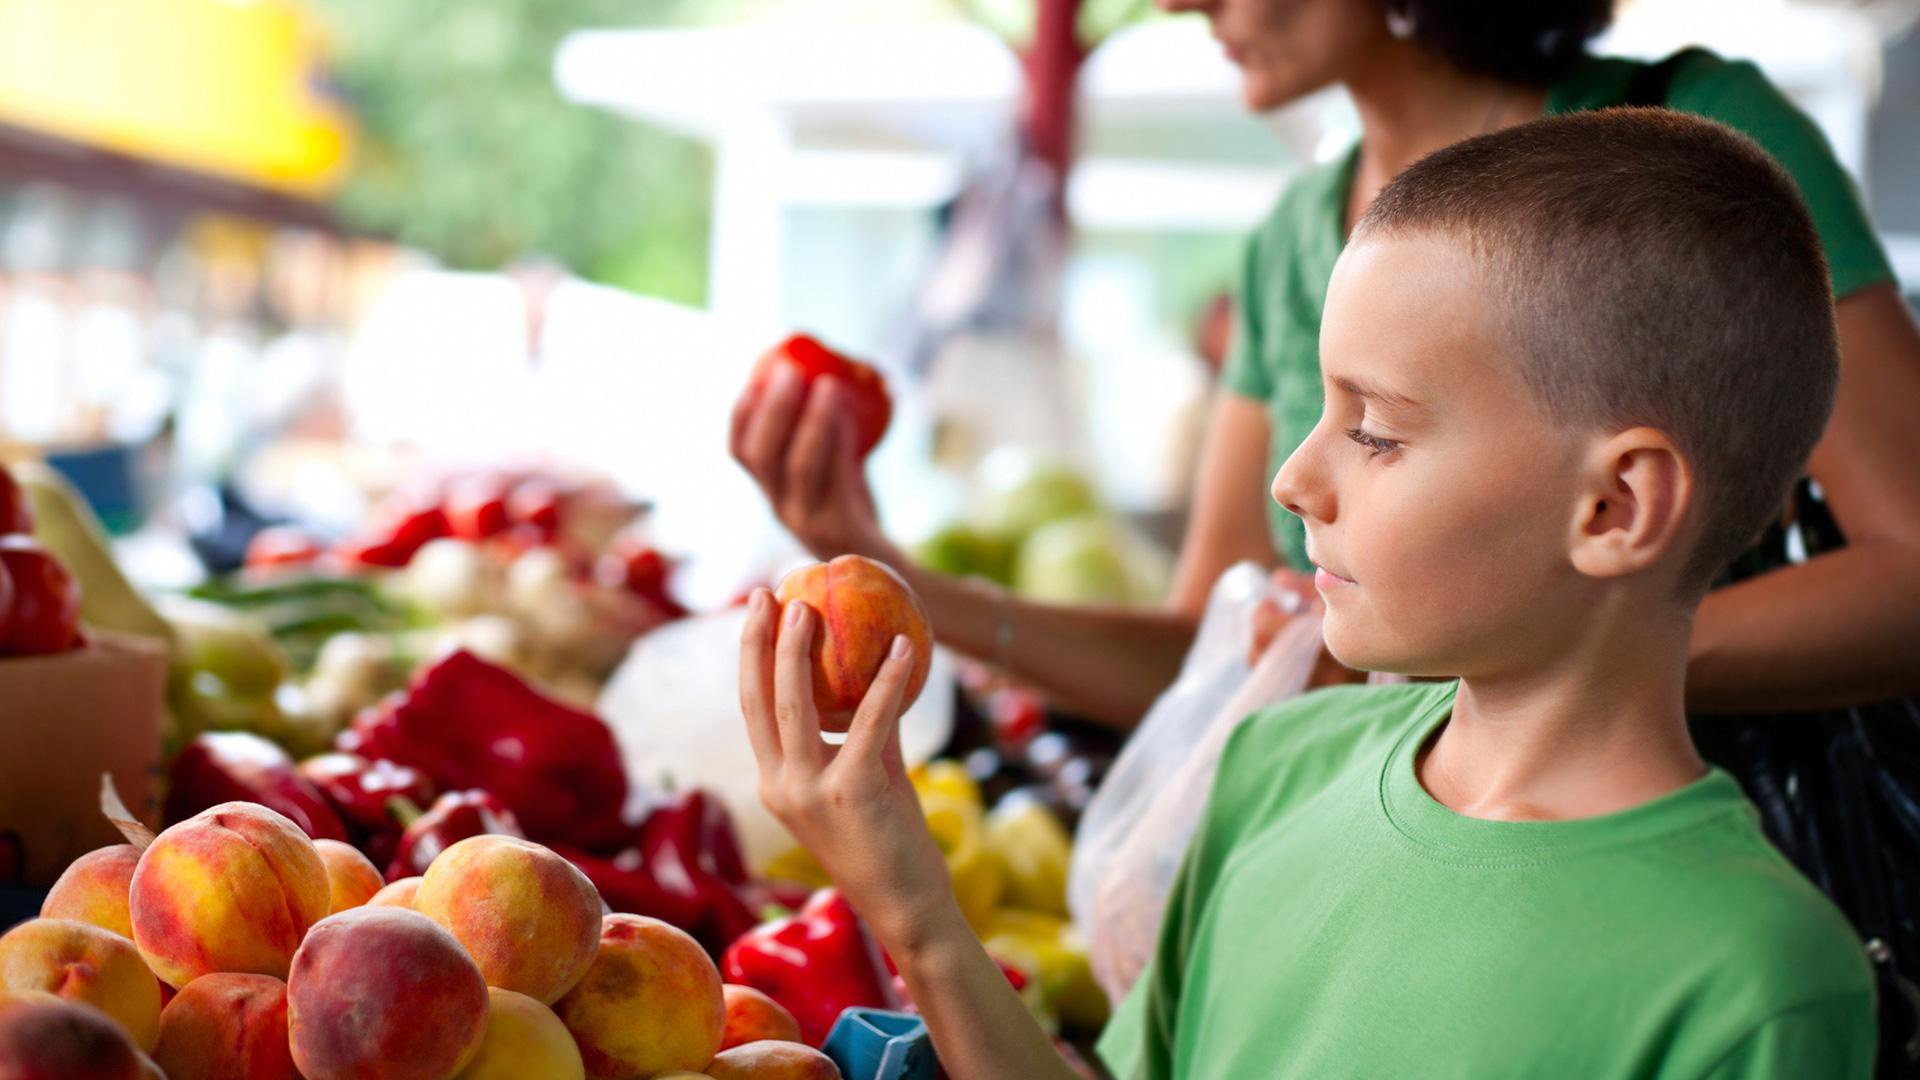 Things you can teach your kids at the farmers market